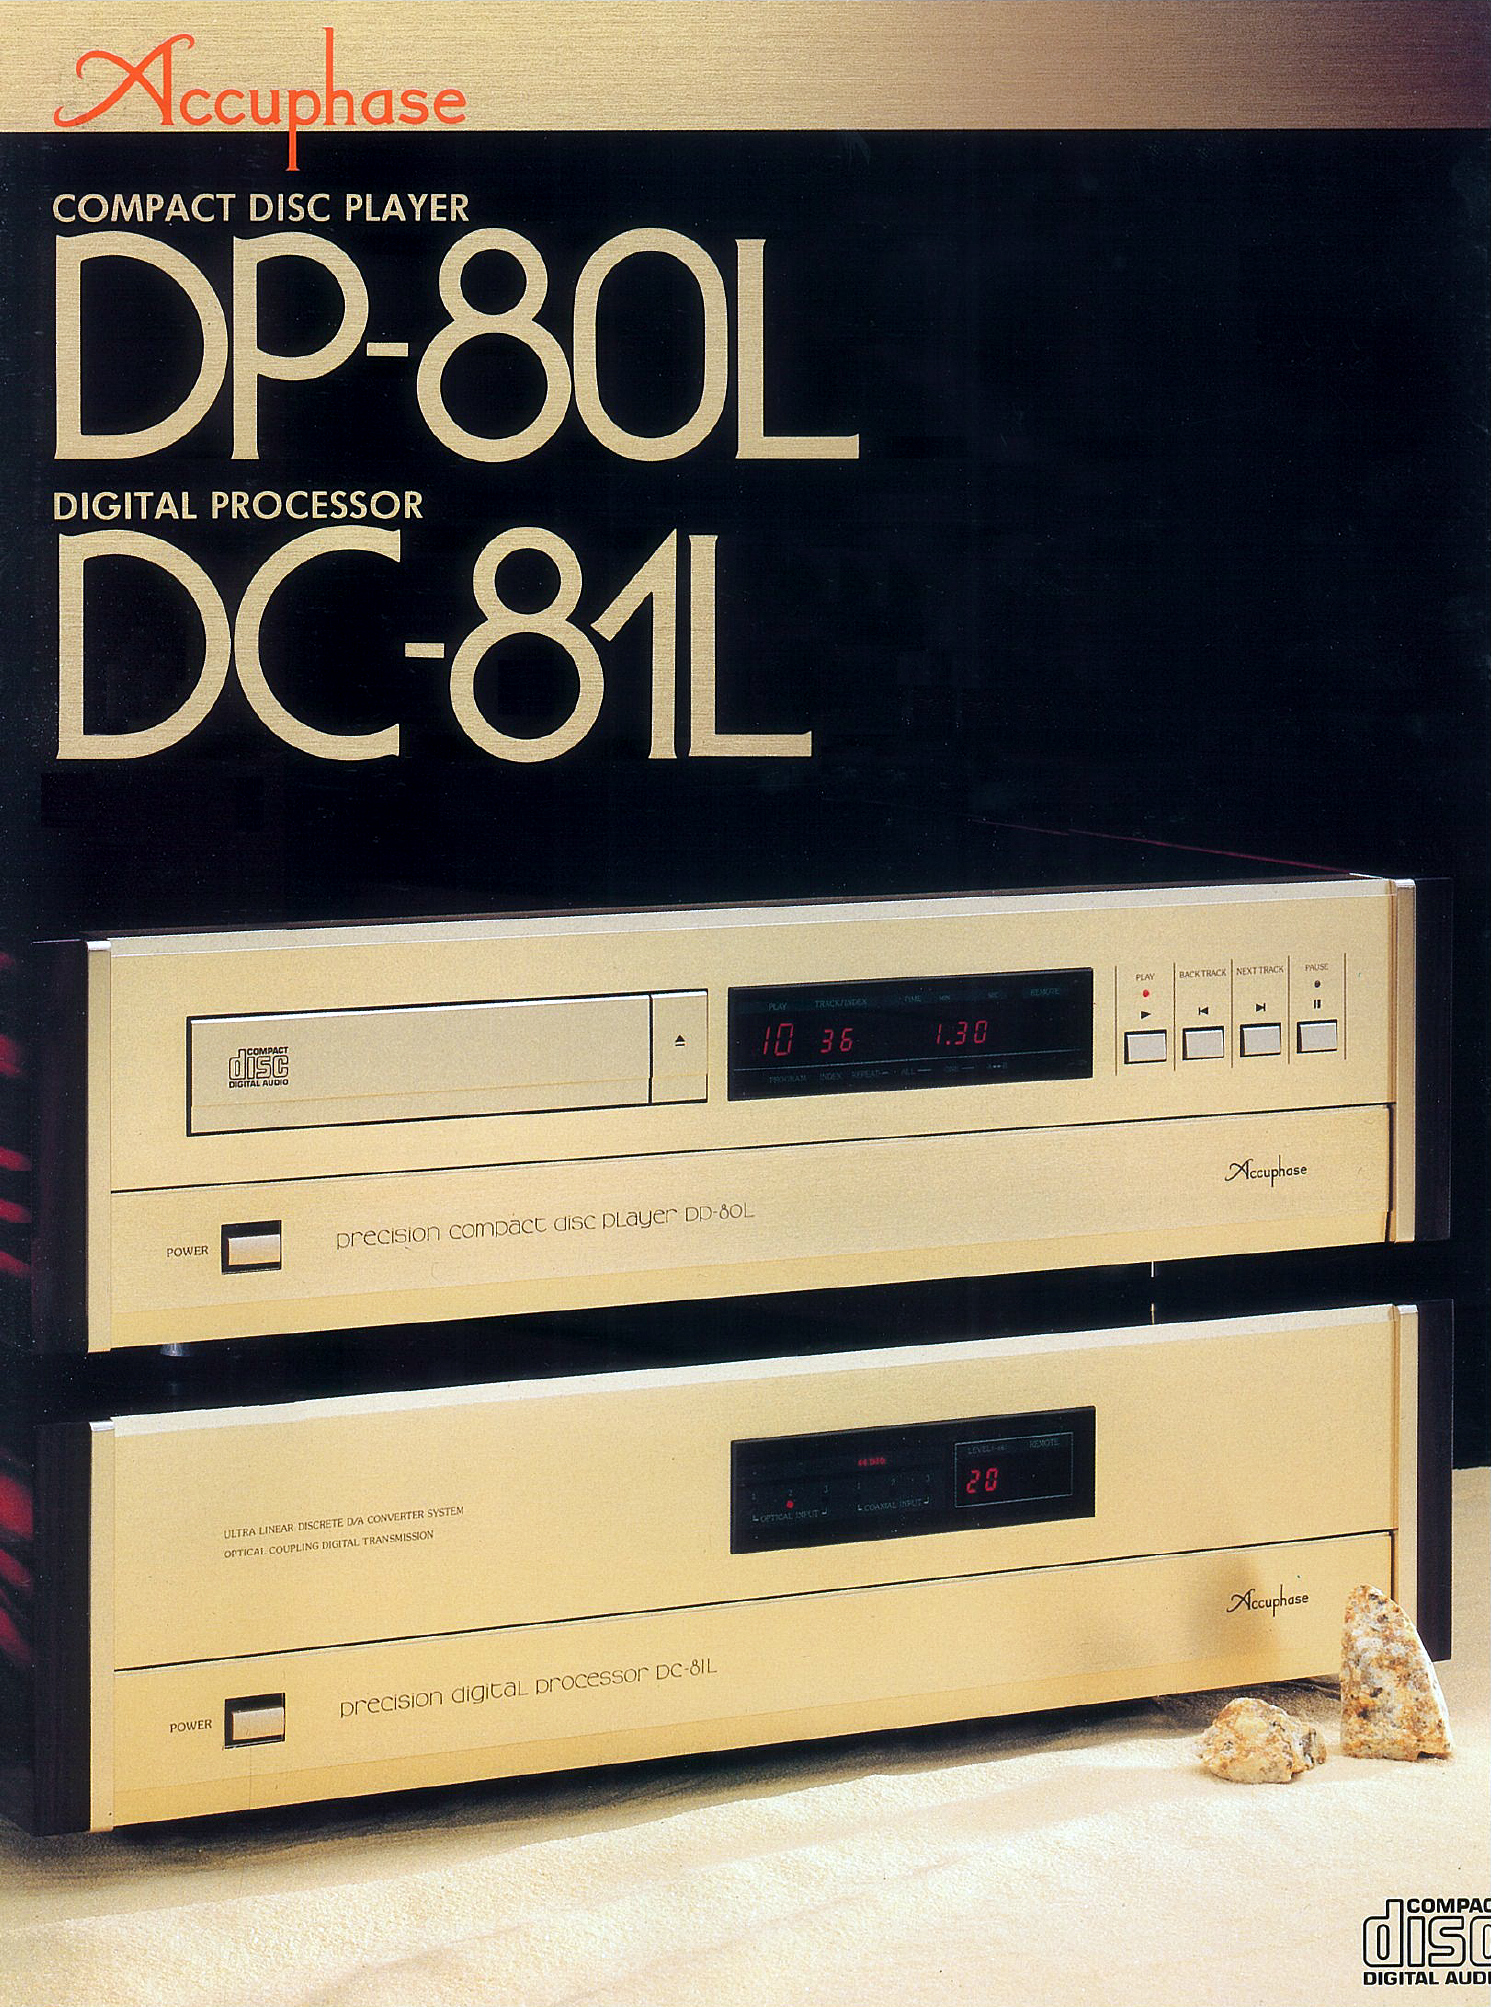 Accuphase DC-DP-80 L-Prospekt-1.jpg